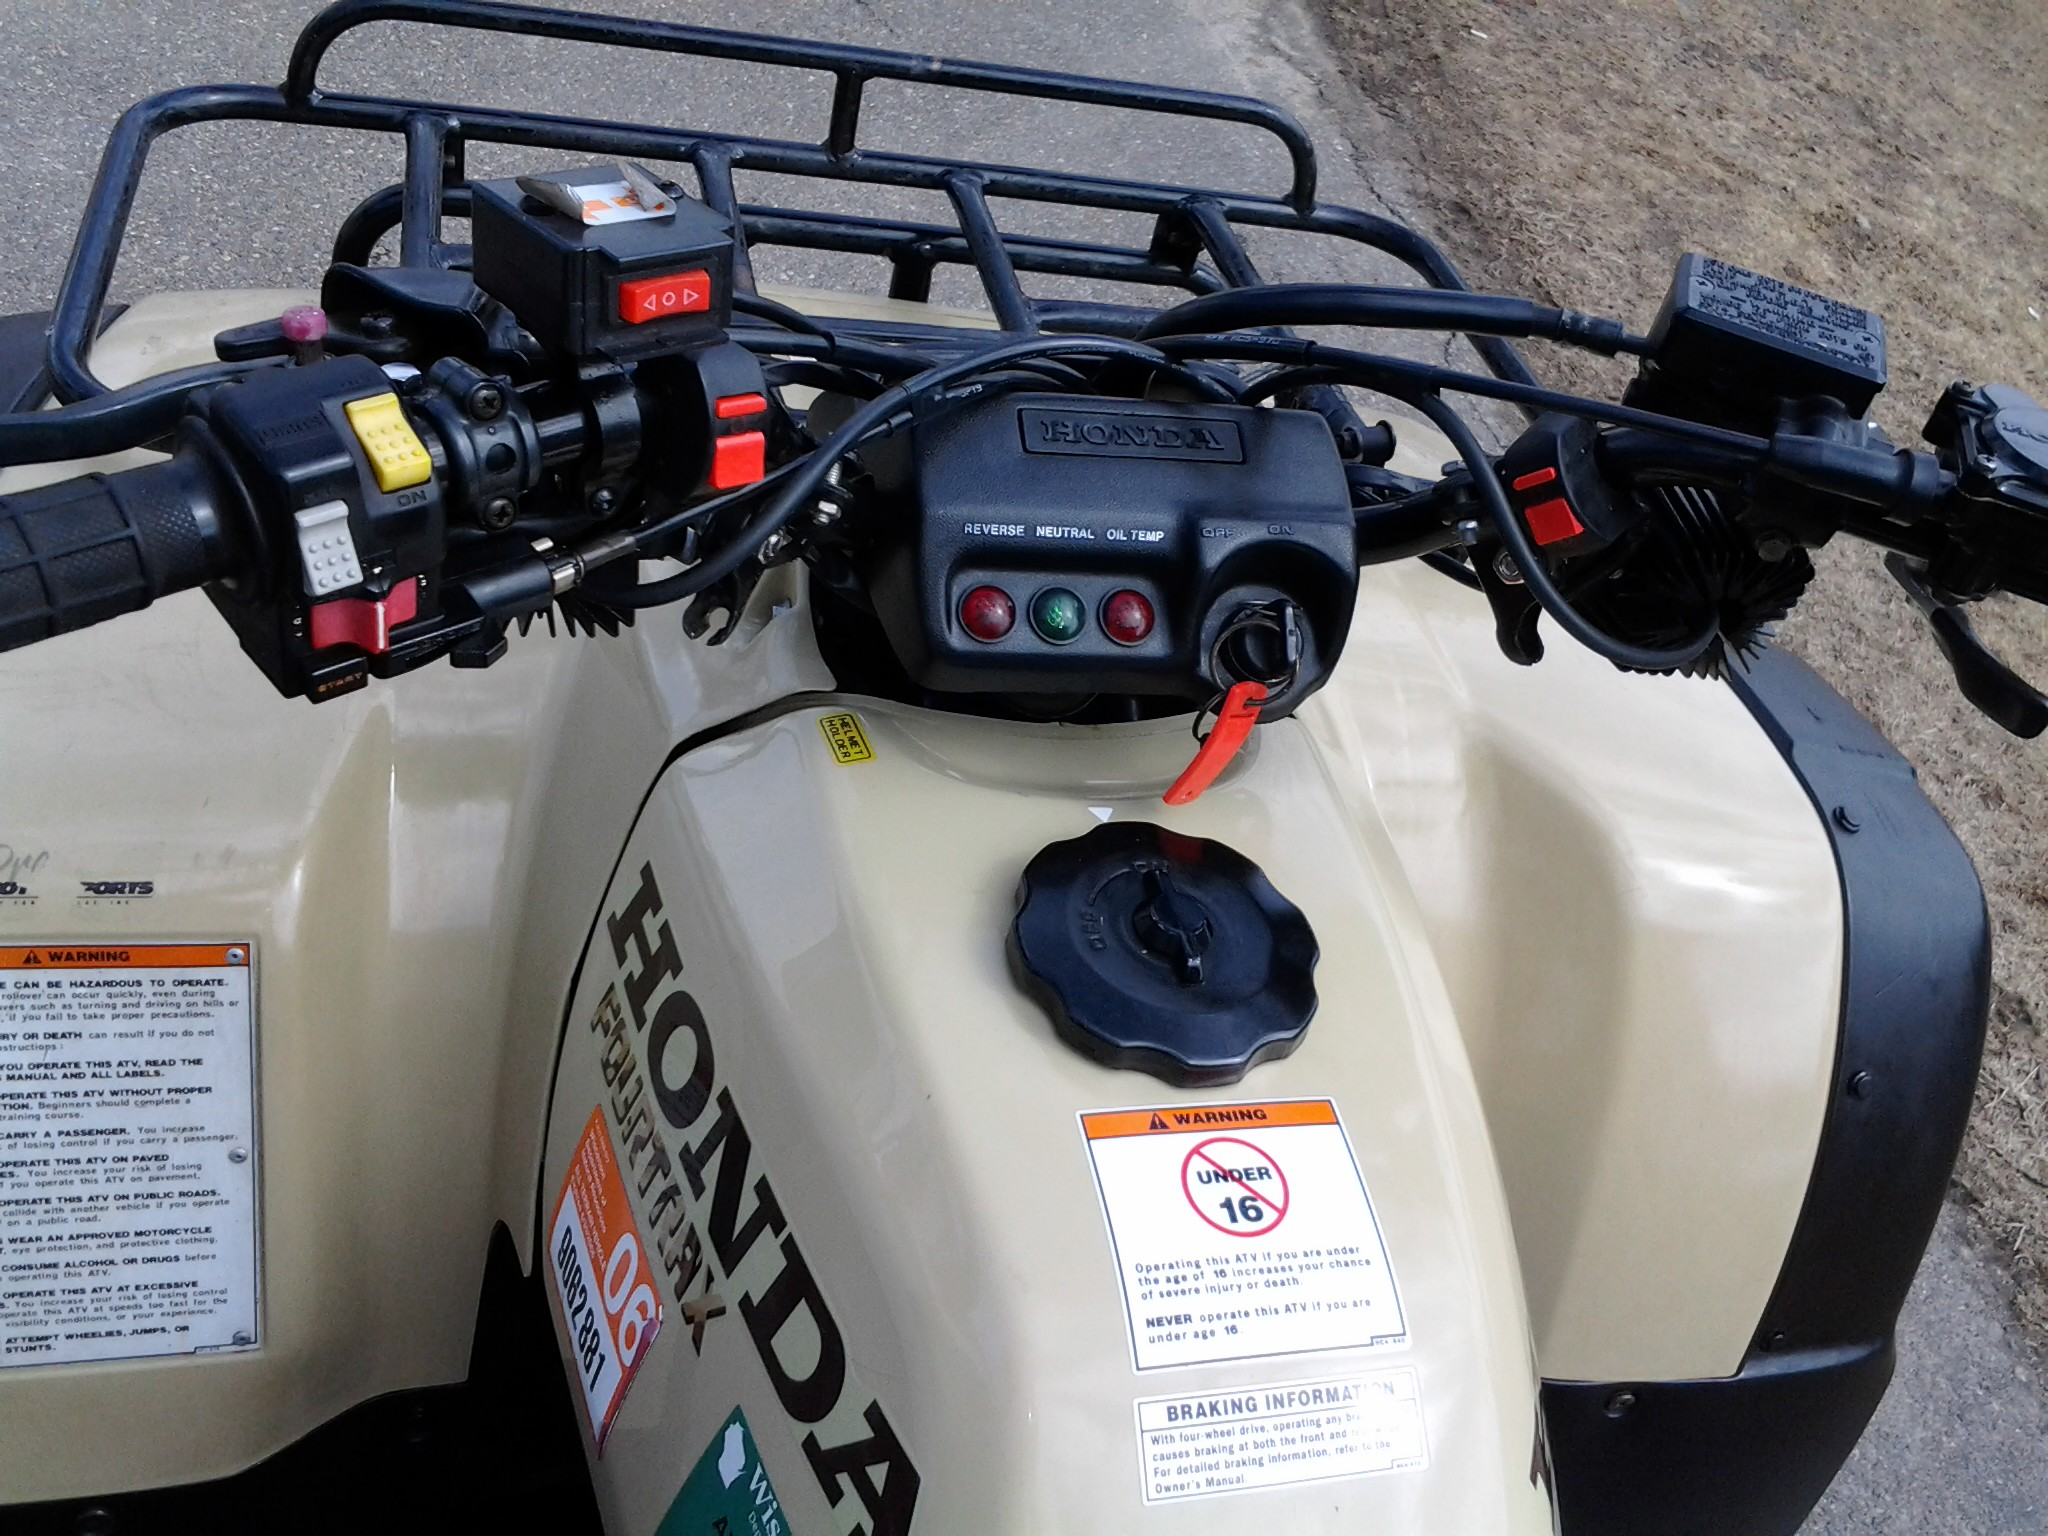 Led atv lights honda atv forum click image for larger version name 003g views 12003 size 6709 mozeypictures Image collections